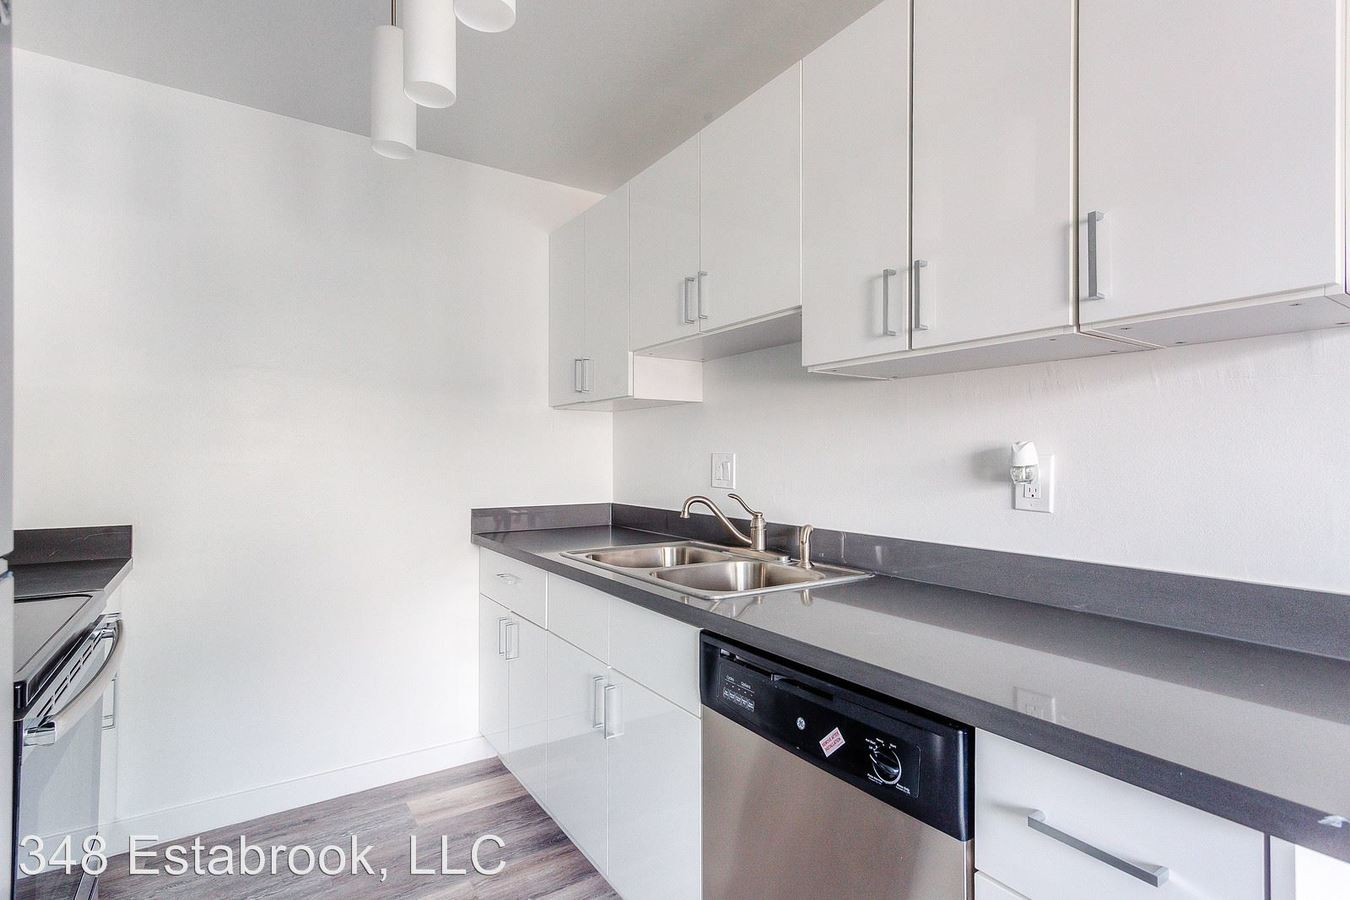 2 Bedrooms 1 Bathroom Apartment for rent at 348 Estabrook in San Leandro, CA